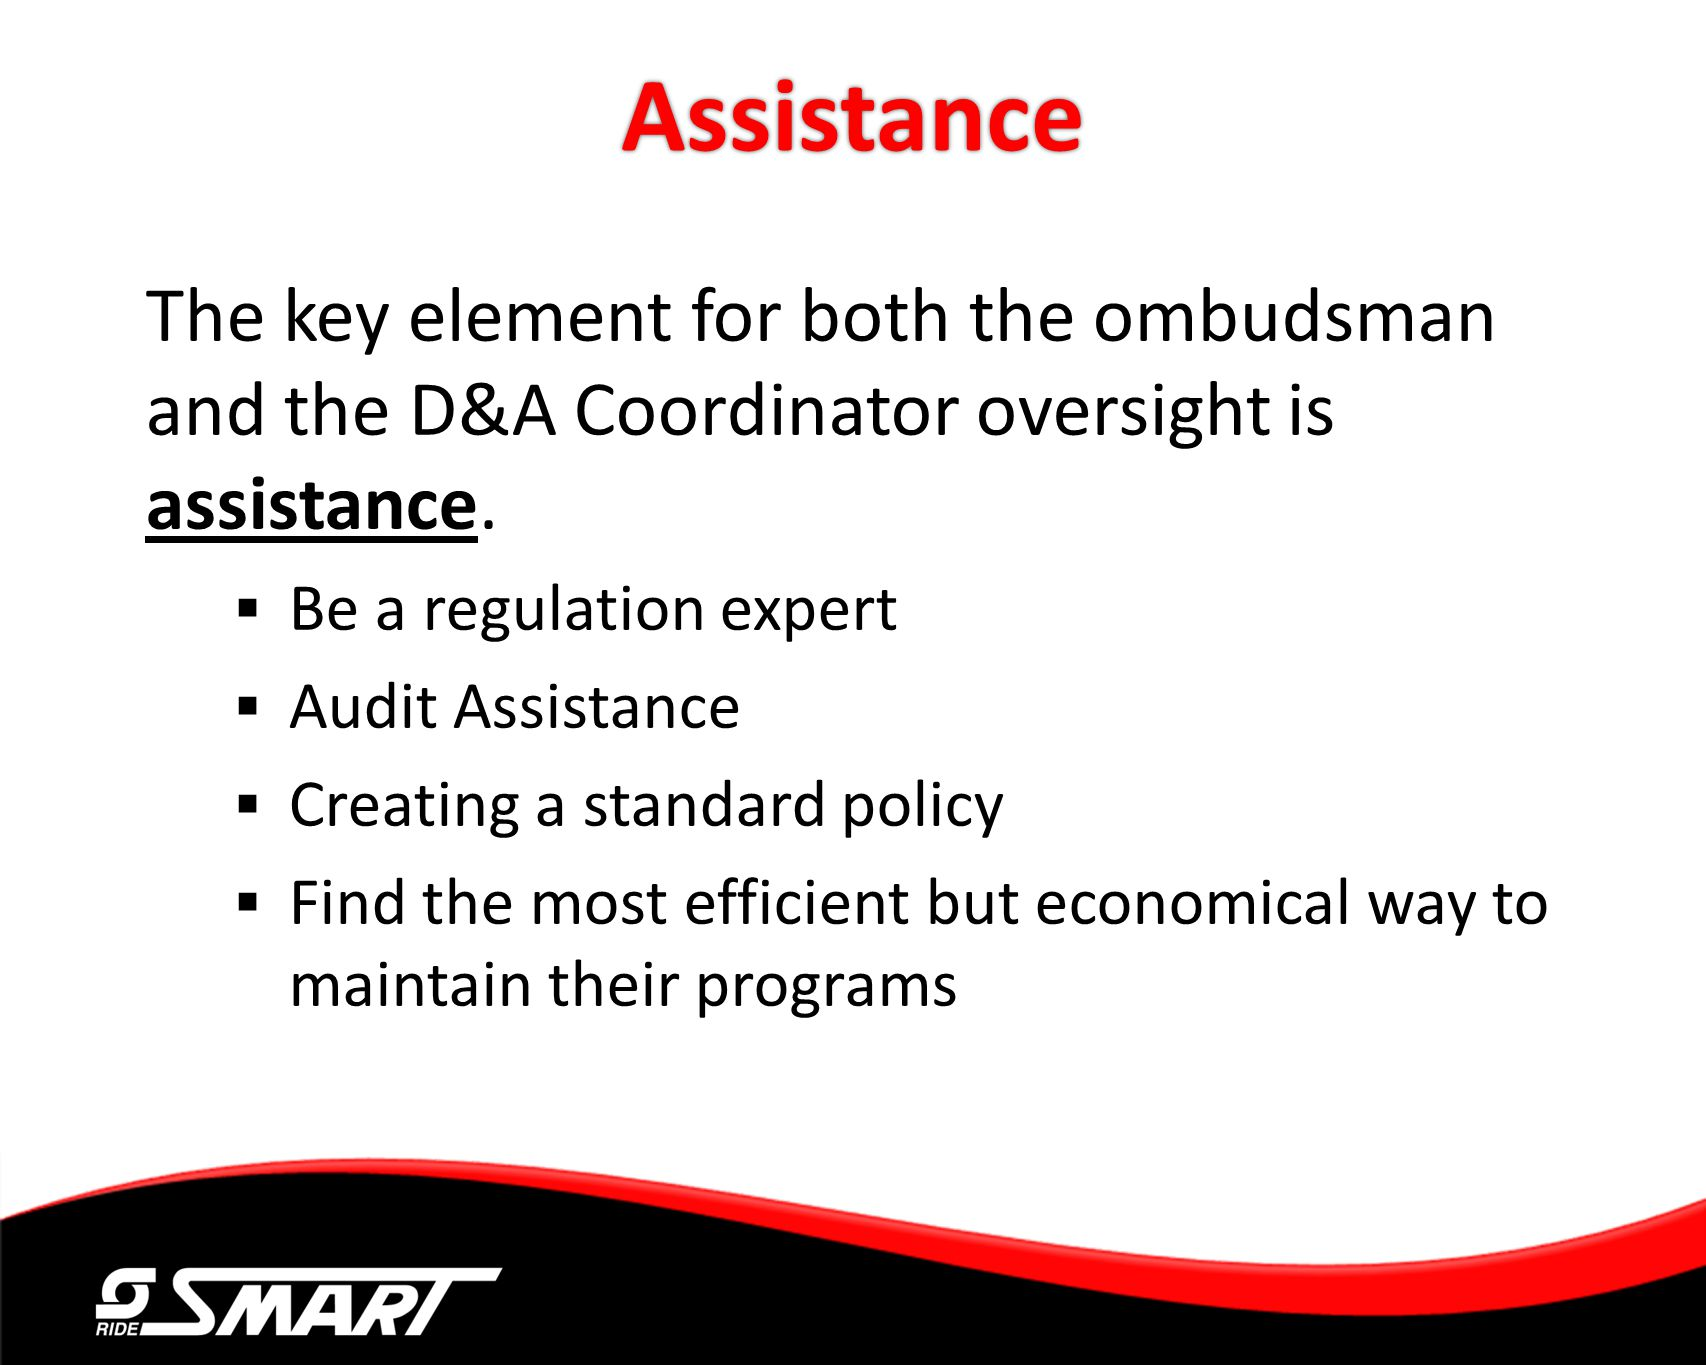 Assistance The key element for both the ombudsman and the D&A Coordinator oversight is assistance.